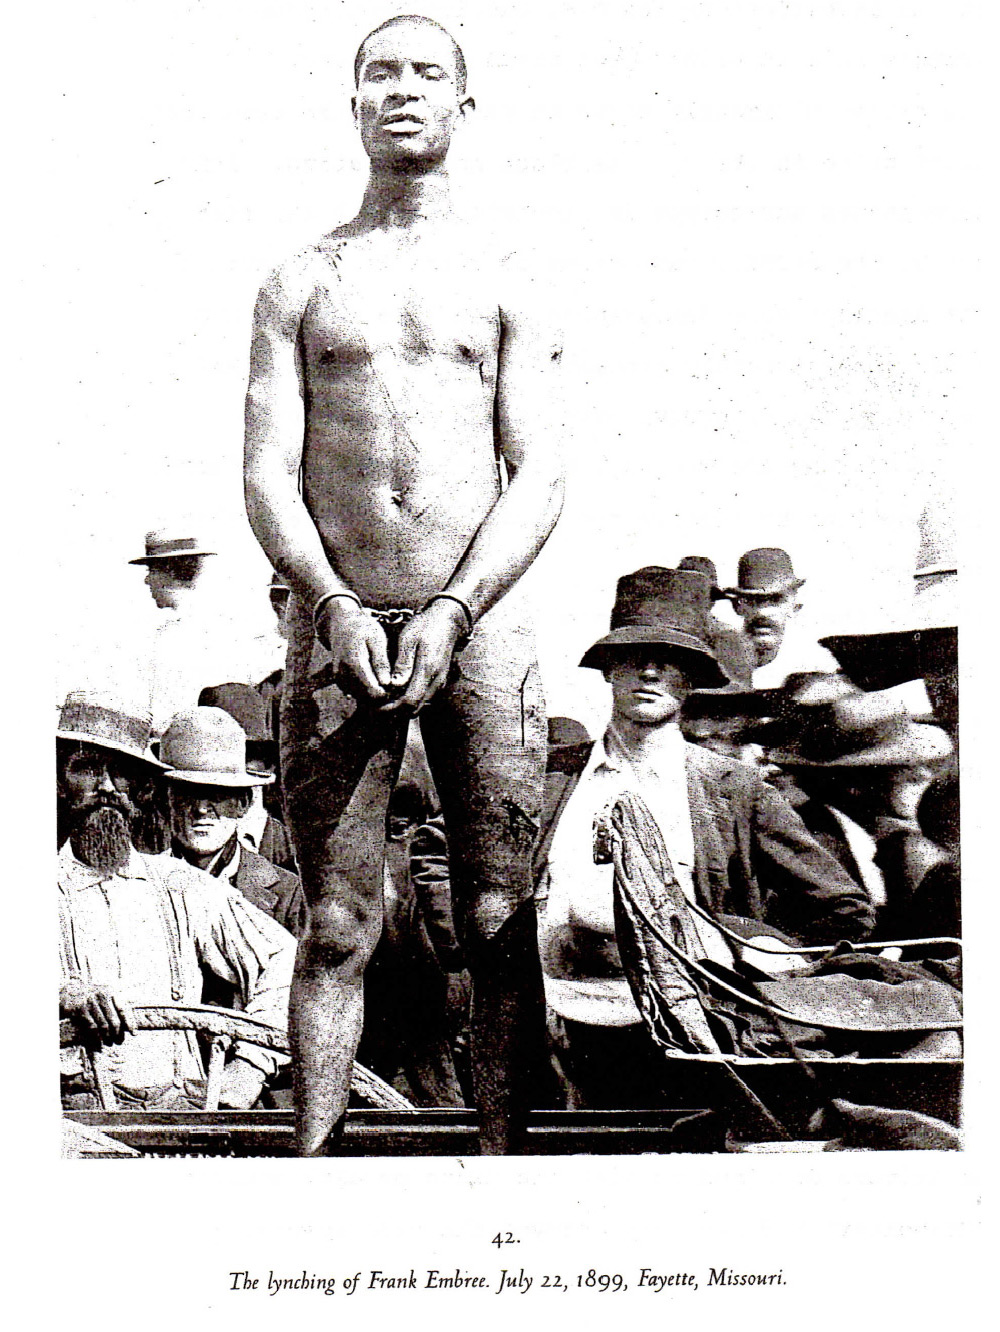 Frank Embree before lynching, Fayette, Missouri, 1899. He was handcuffed, stripped naked and whipped, later lynched and castrated. Before and after images of him were sold as postcards. Source: Without Sanctuary: Lynching Photography in America